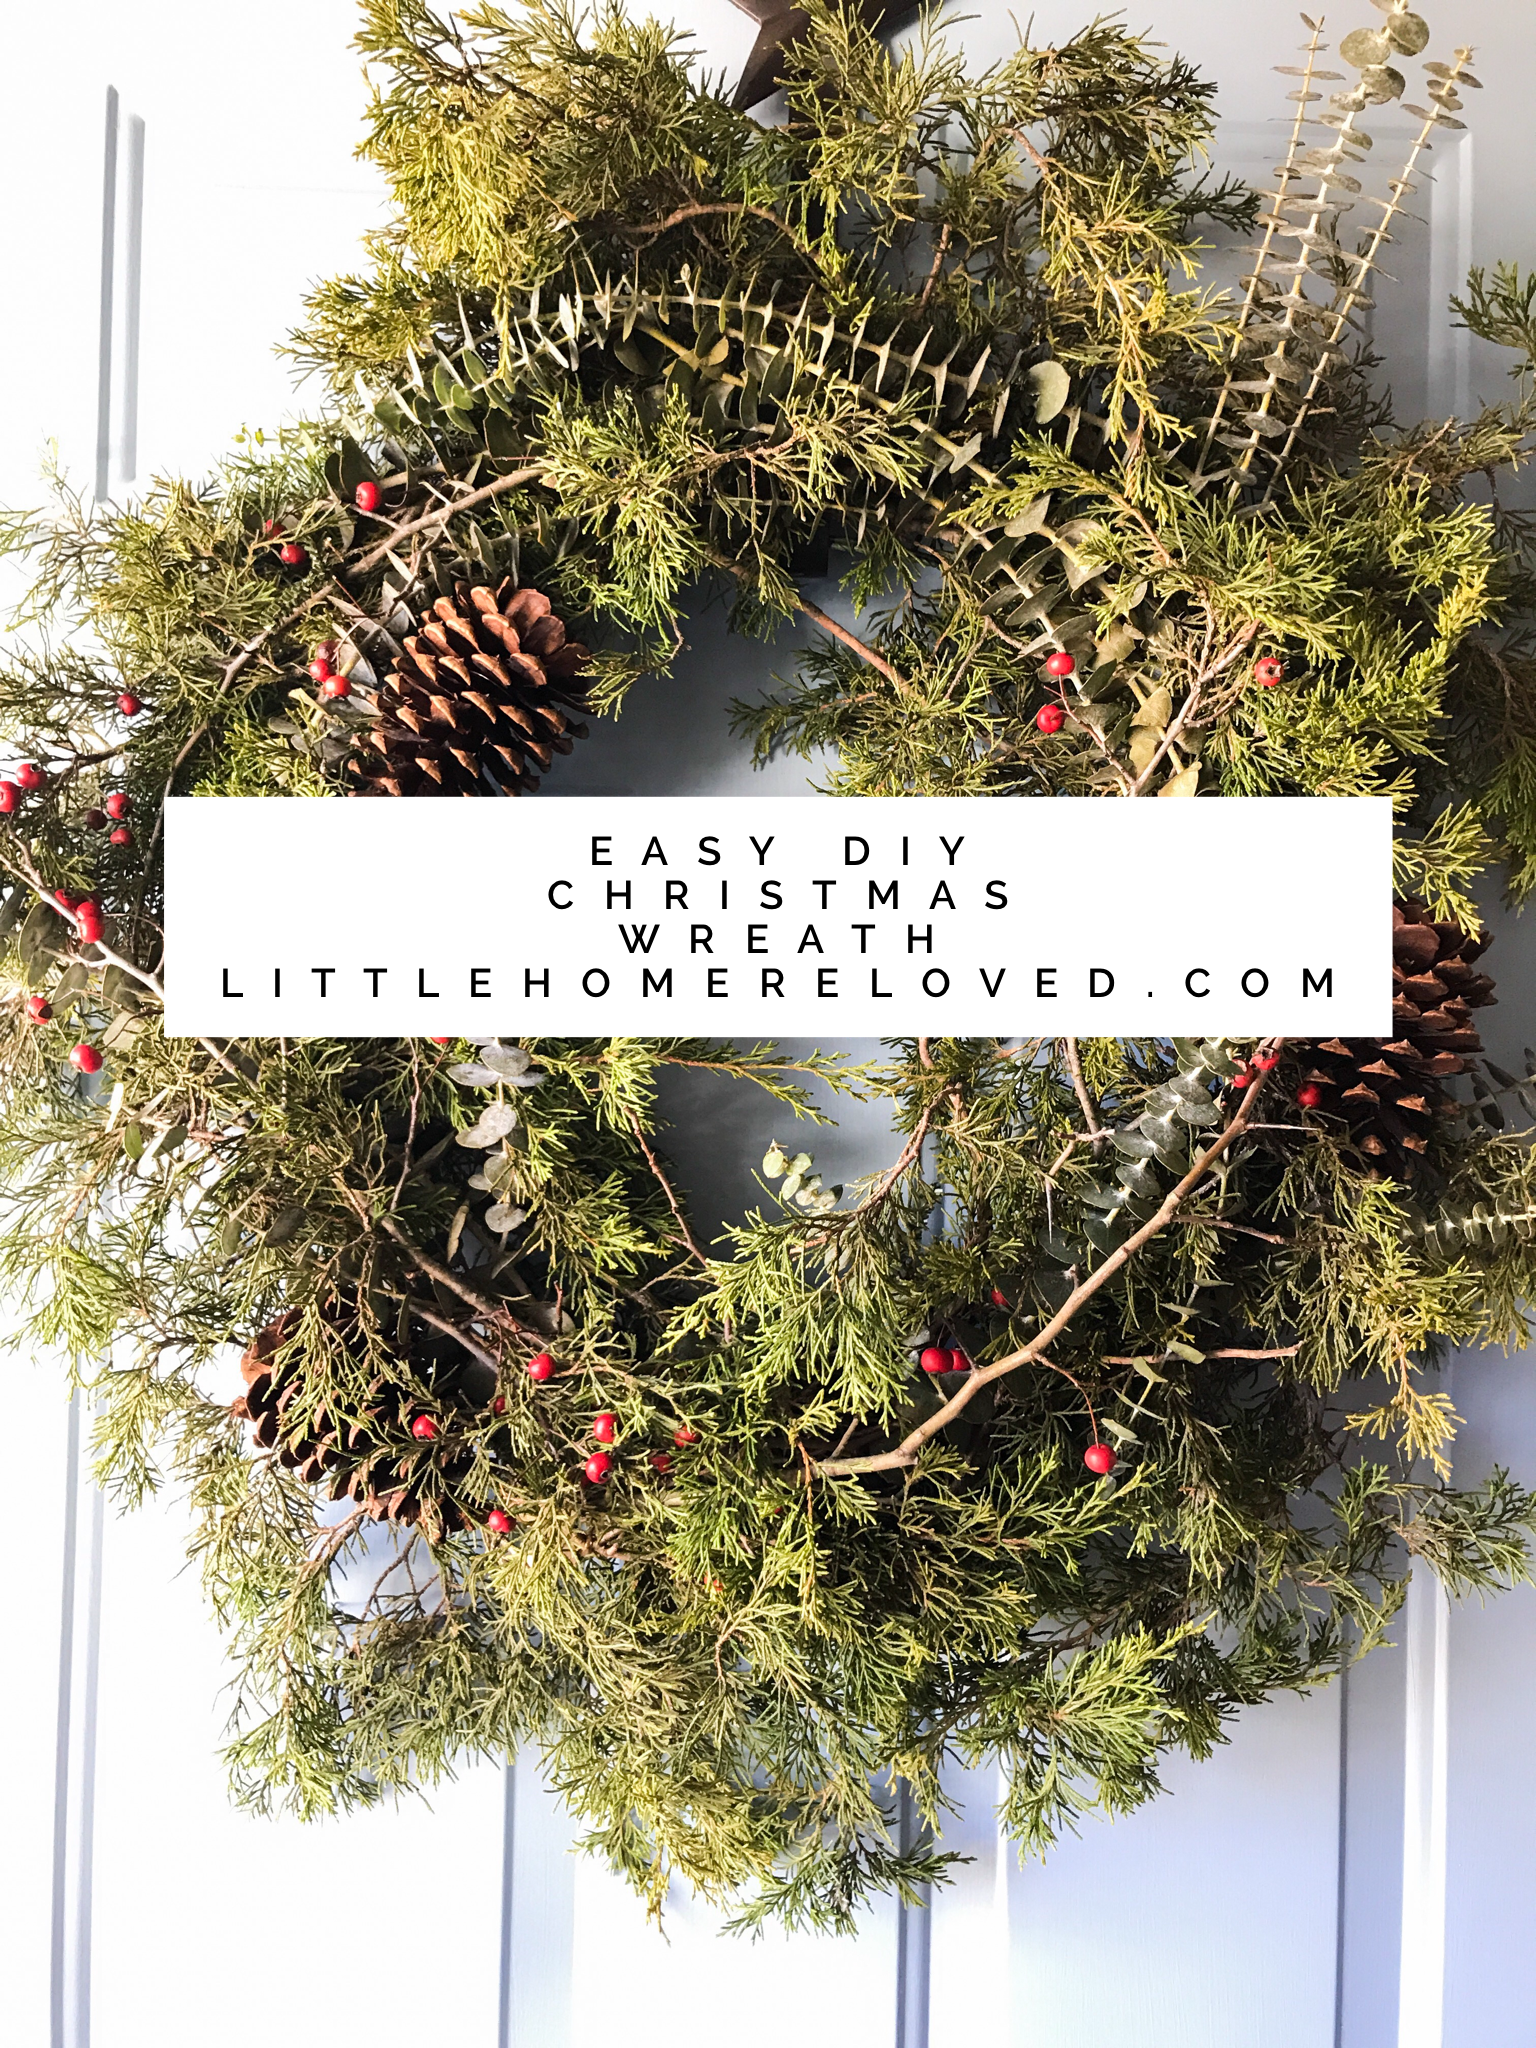 Love The Look Of Those Natural Farmhouse Christmas Wreaths I